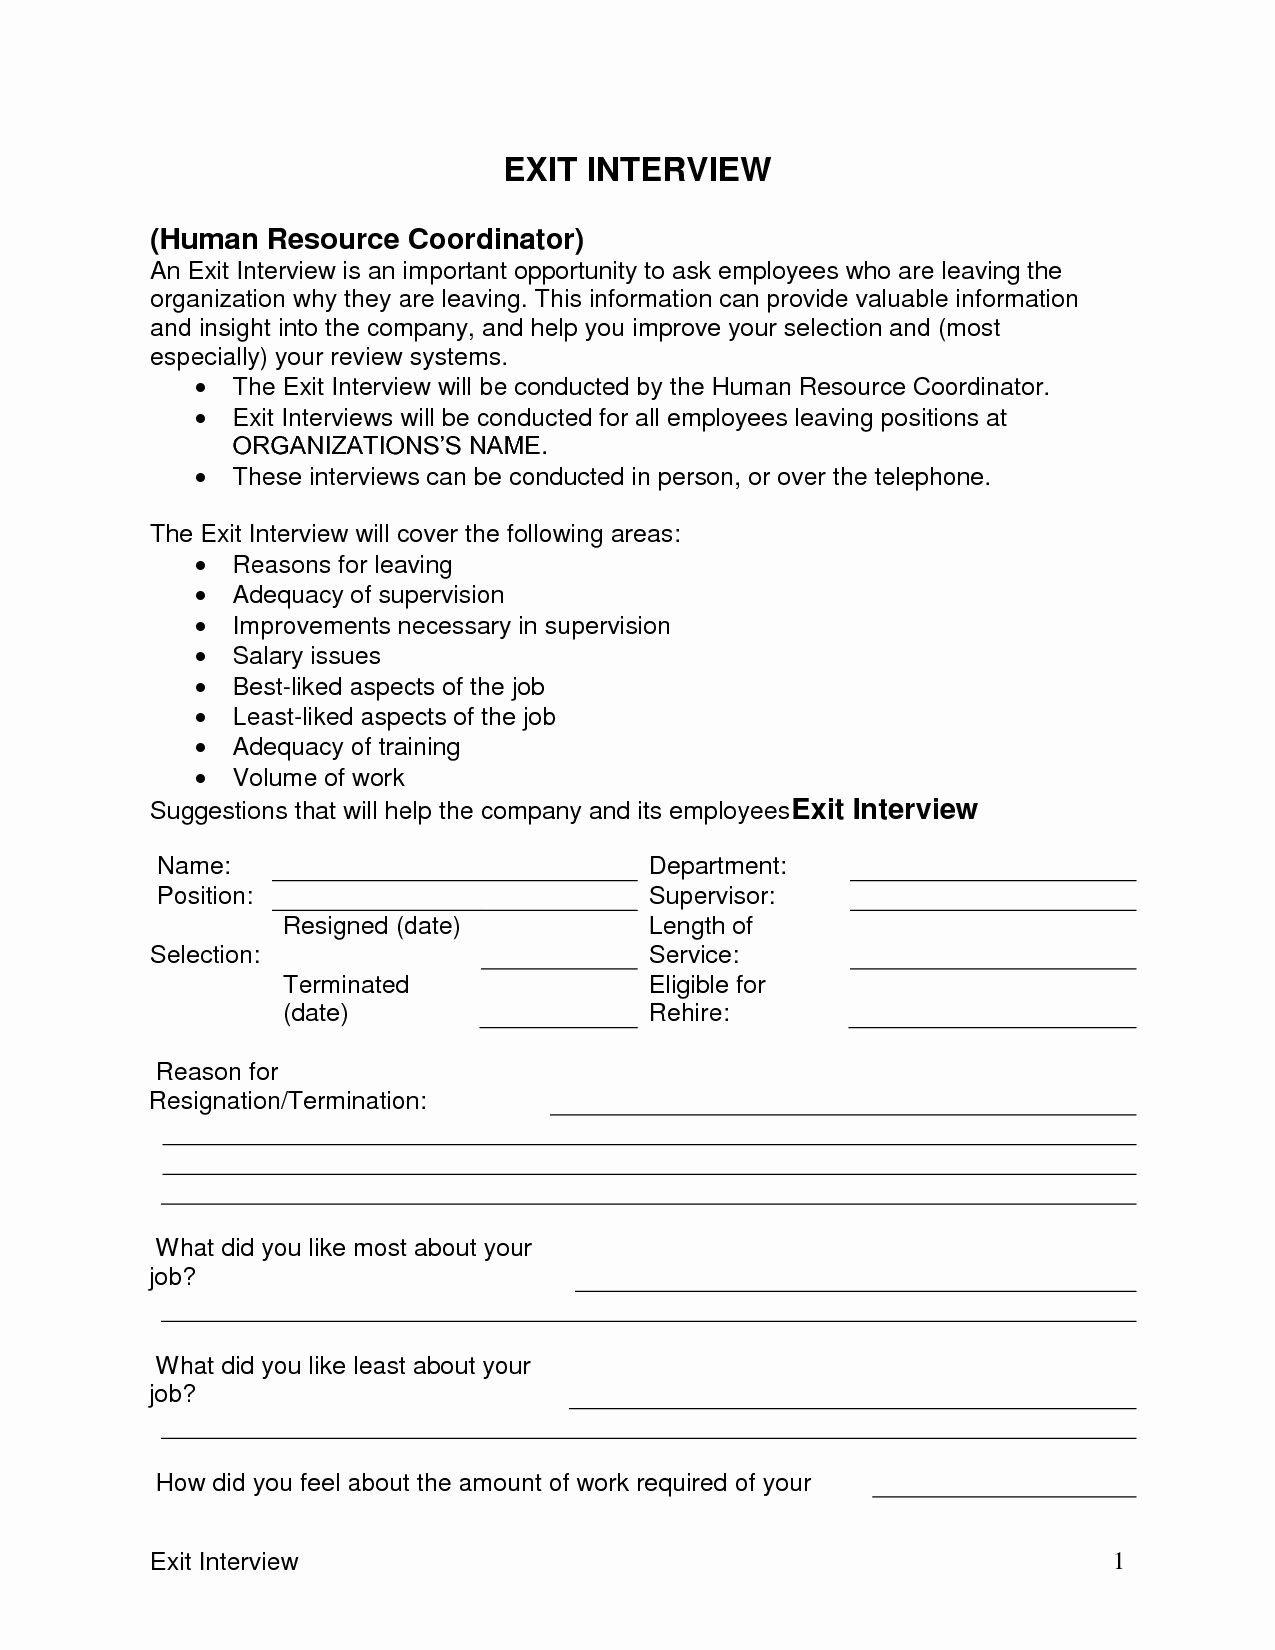 Sample Exit Interview forms Best Of Exit Interview